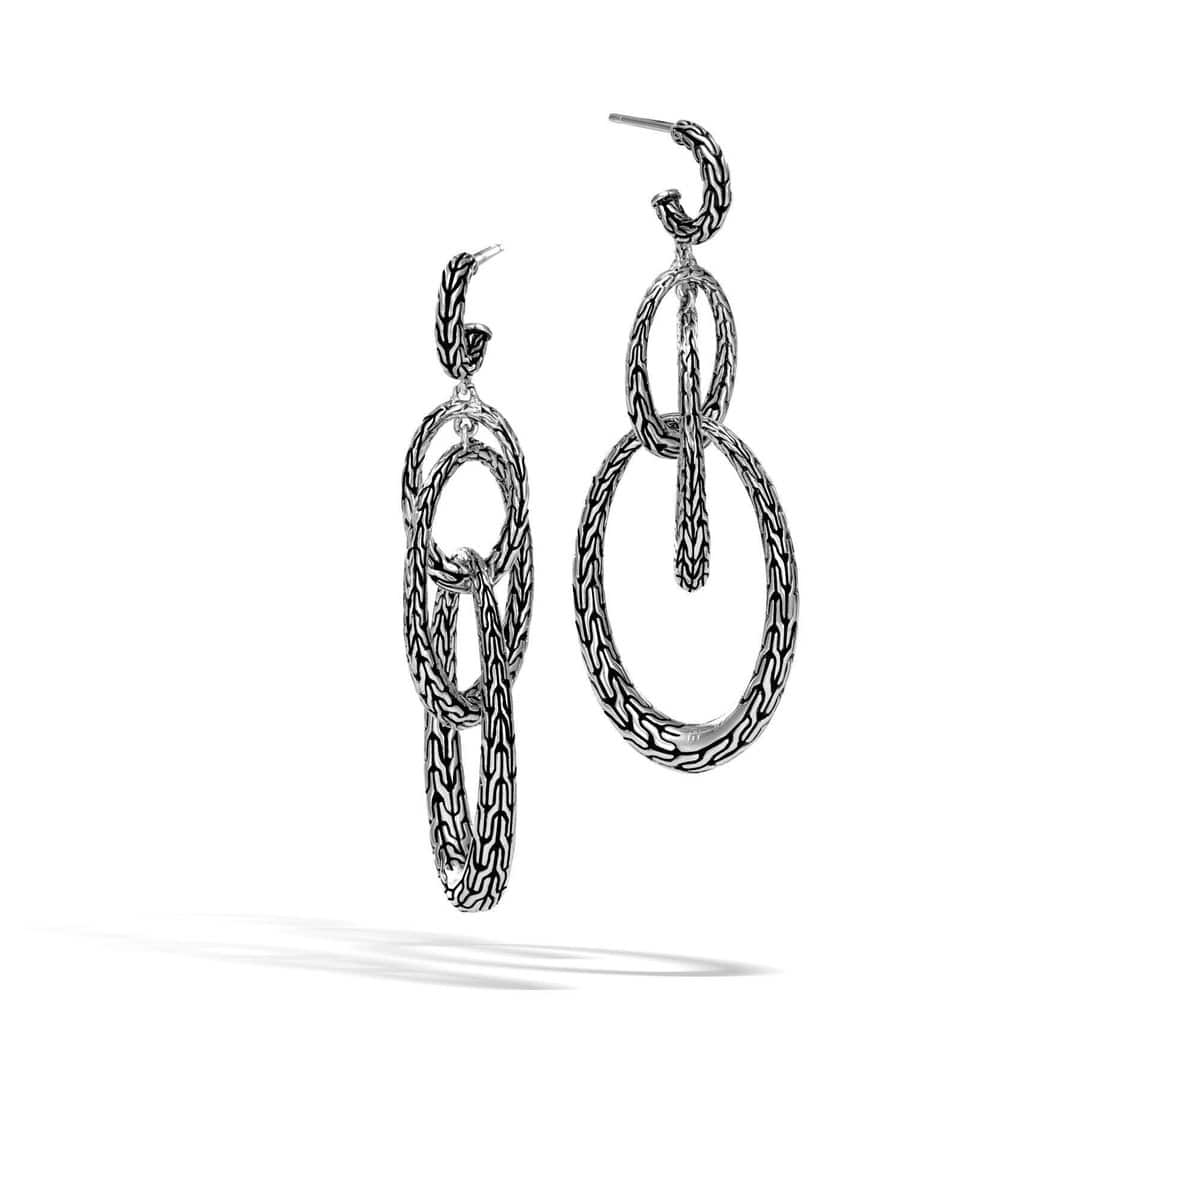 Classic Chain Silver Drop Earrings - EB999678-John Hardy-Renee Taylor Gallery